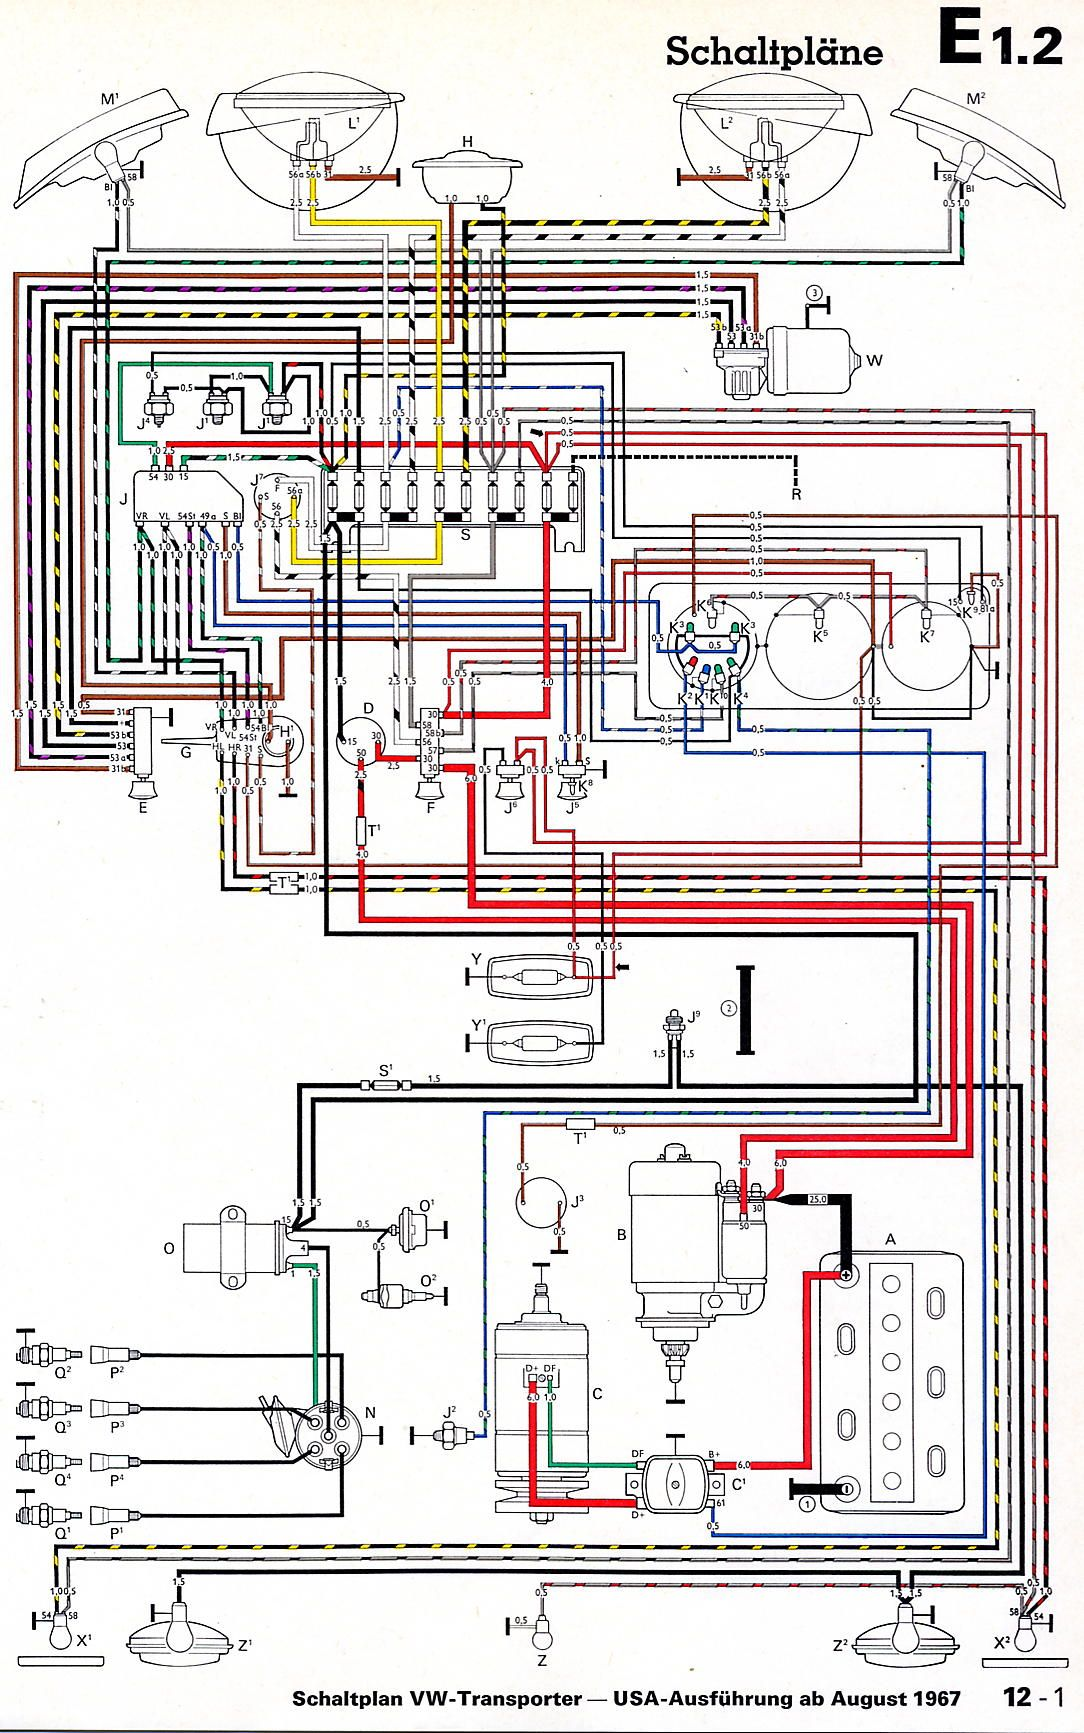 1968 Vw Bus Wiring Diagram Vw Bus Wire Diagram